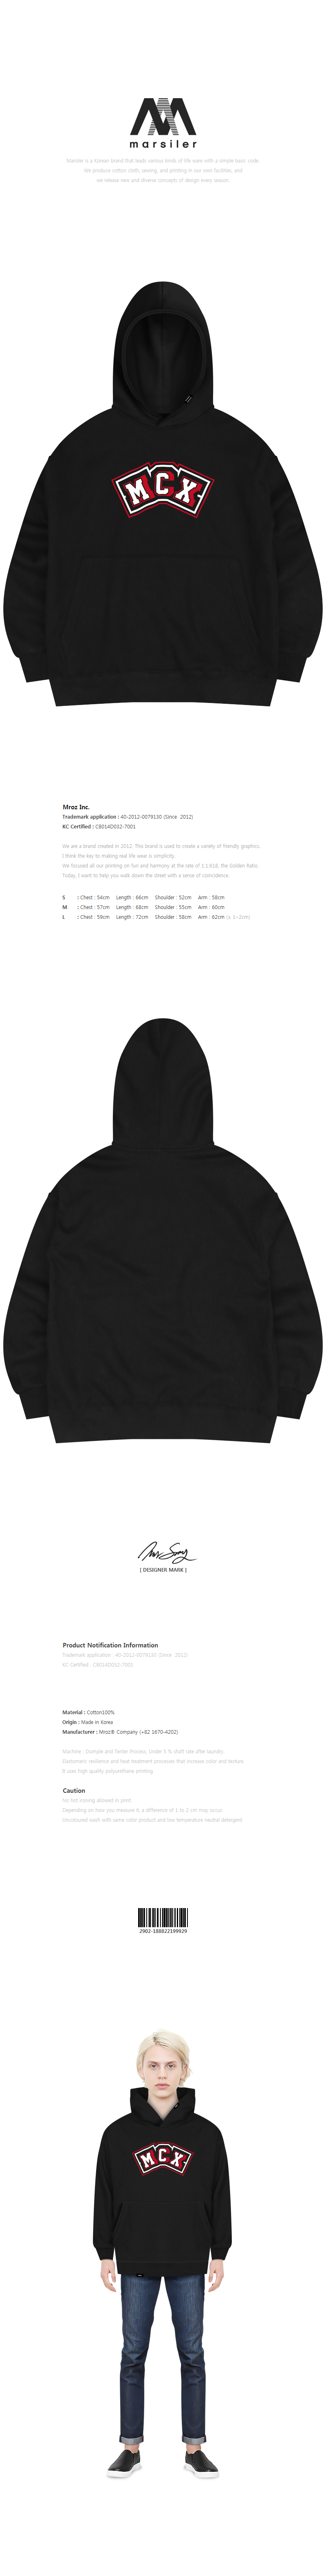 DECAL HOODED SWEAT SHIRT BLACK